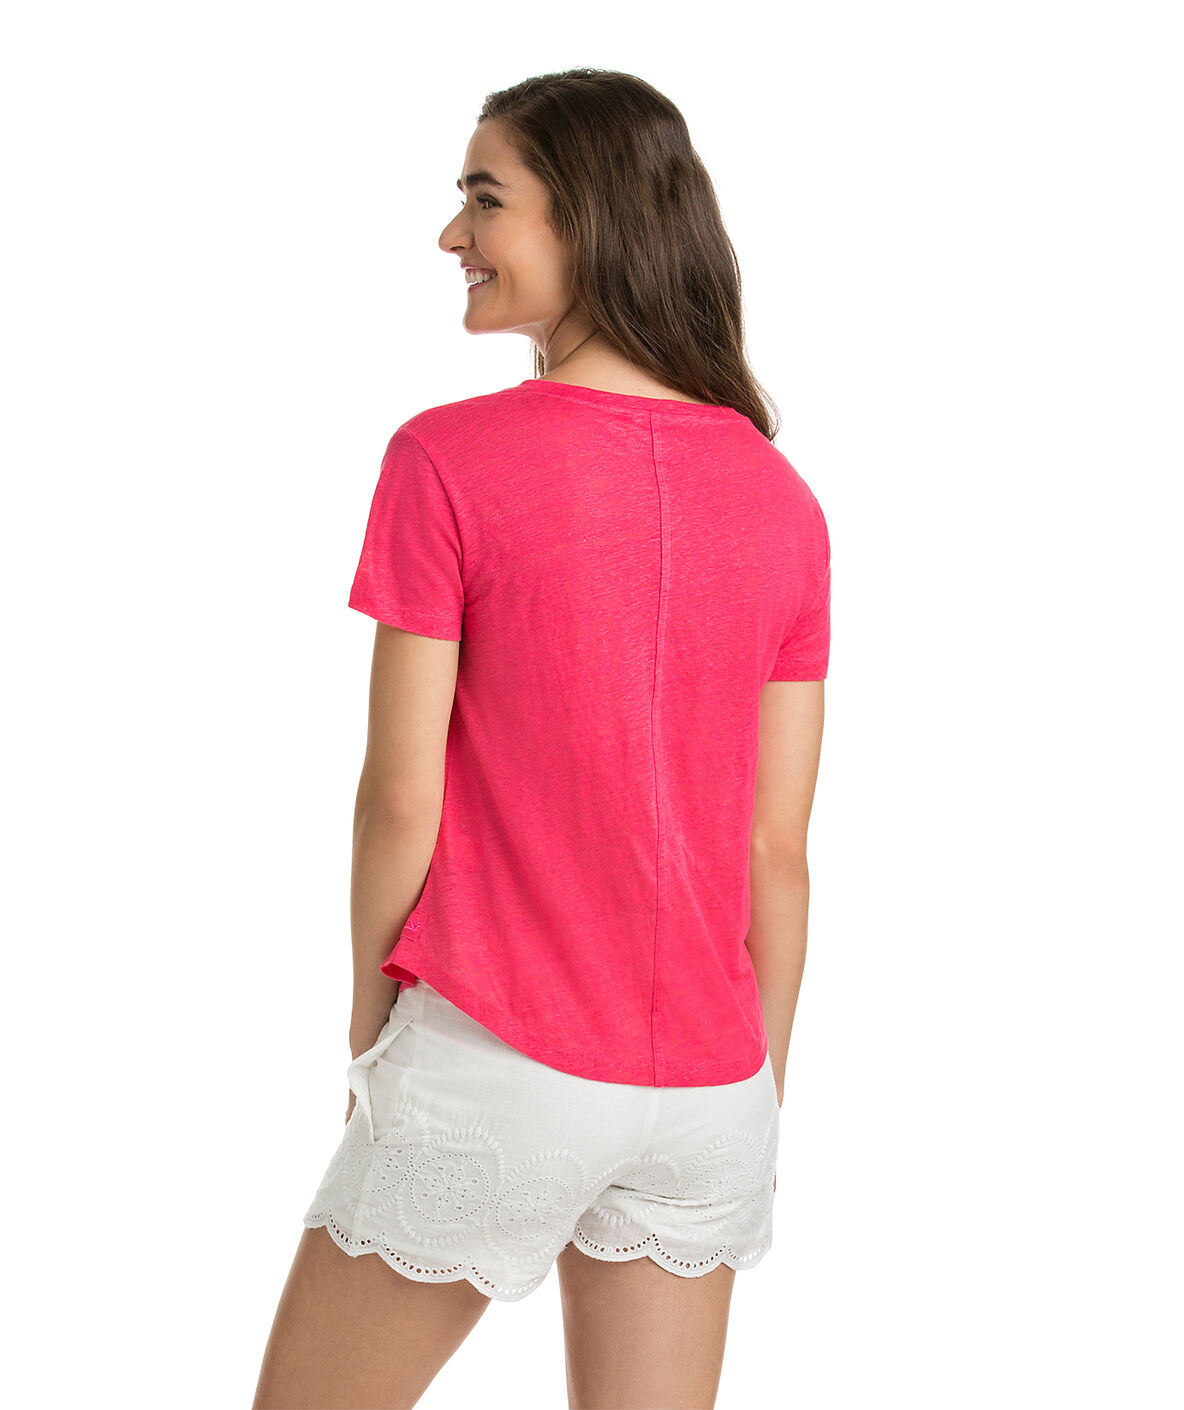 Shop Every Day Linen Tee At Vineyard Vines